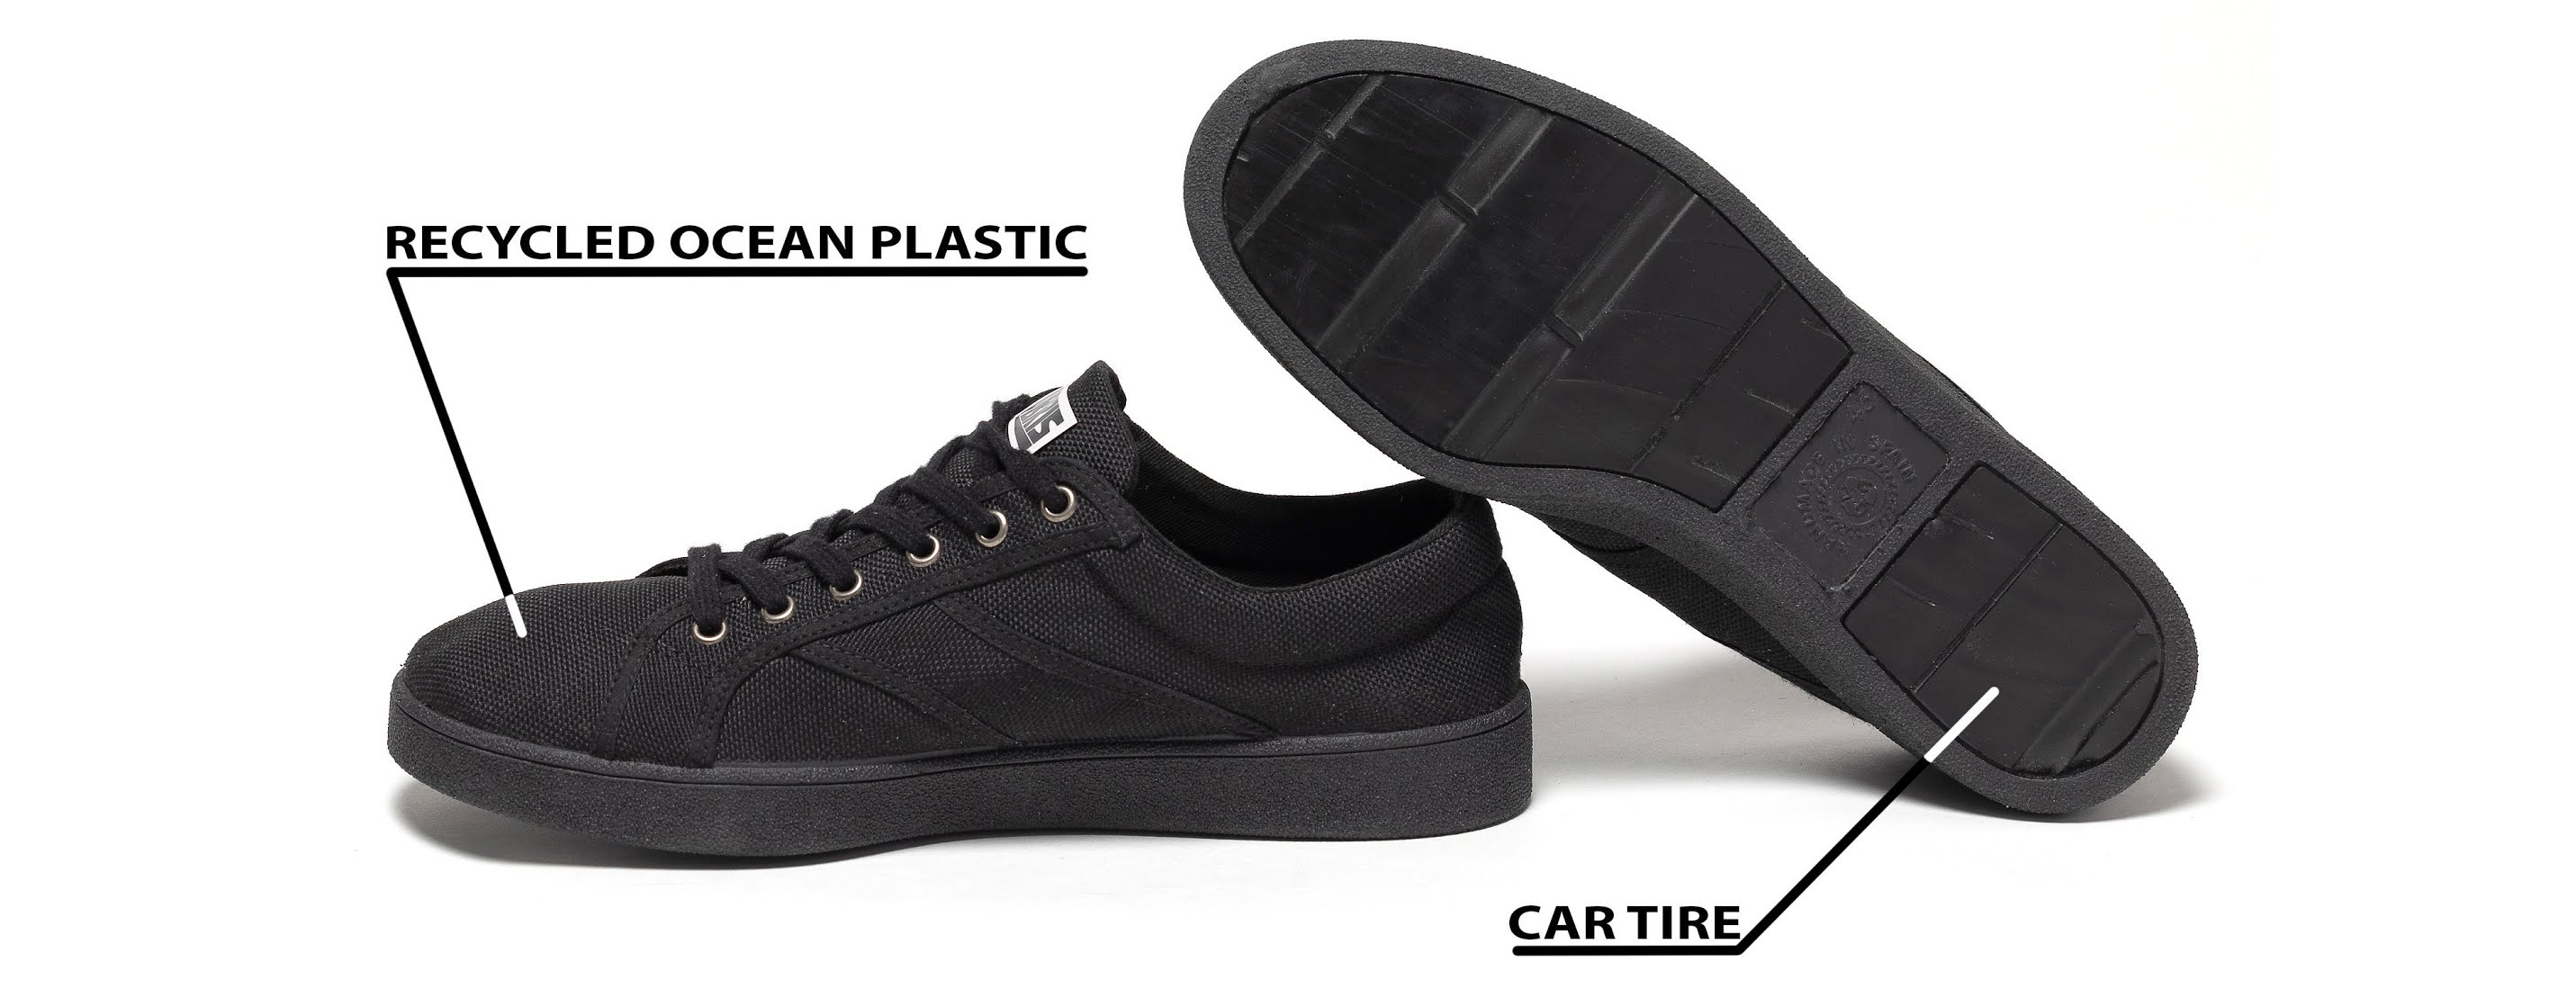 Eco-friendly sustainale sneakers for skaters